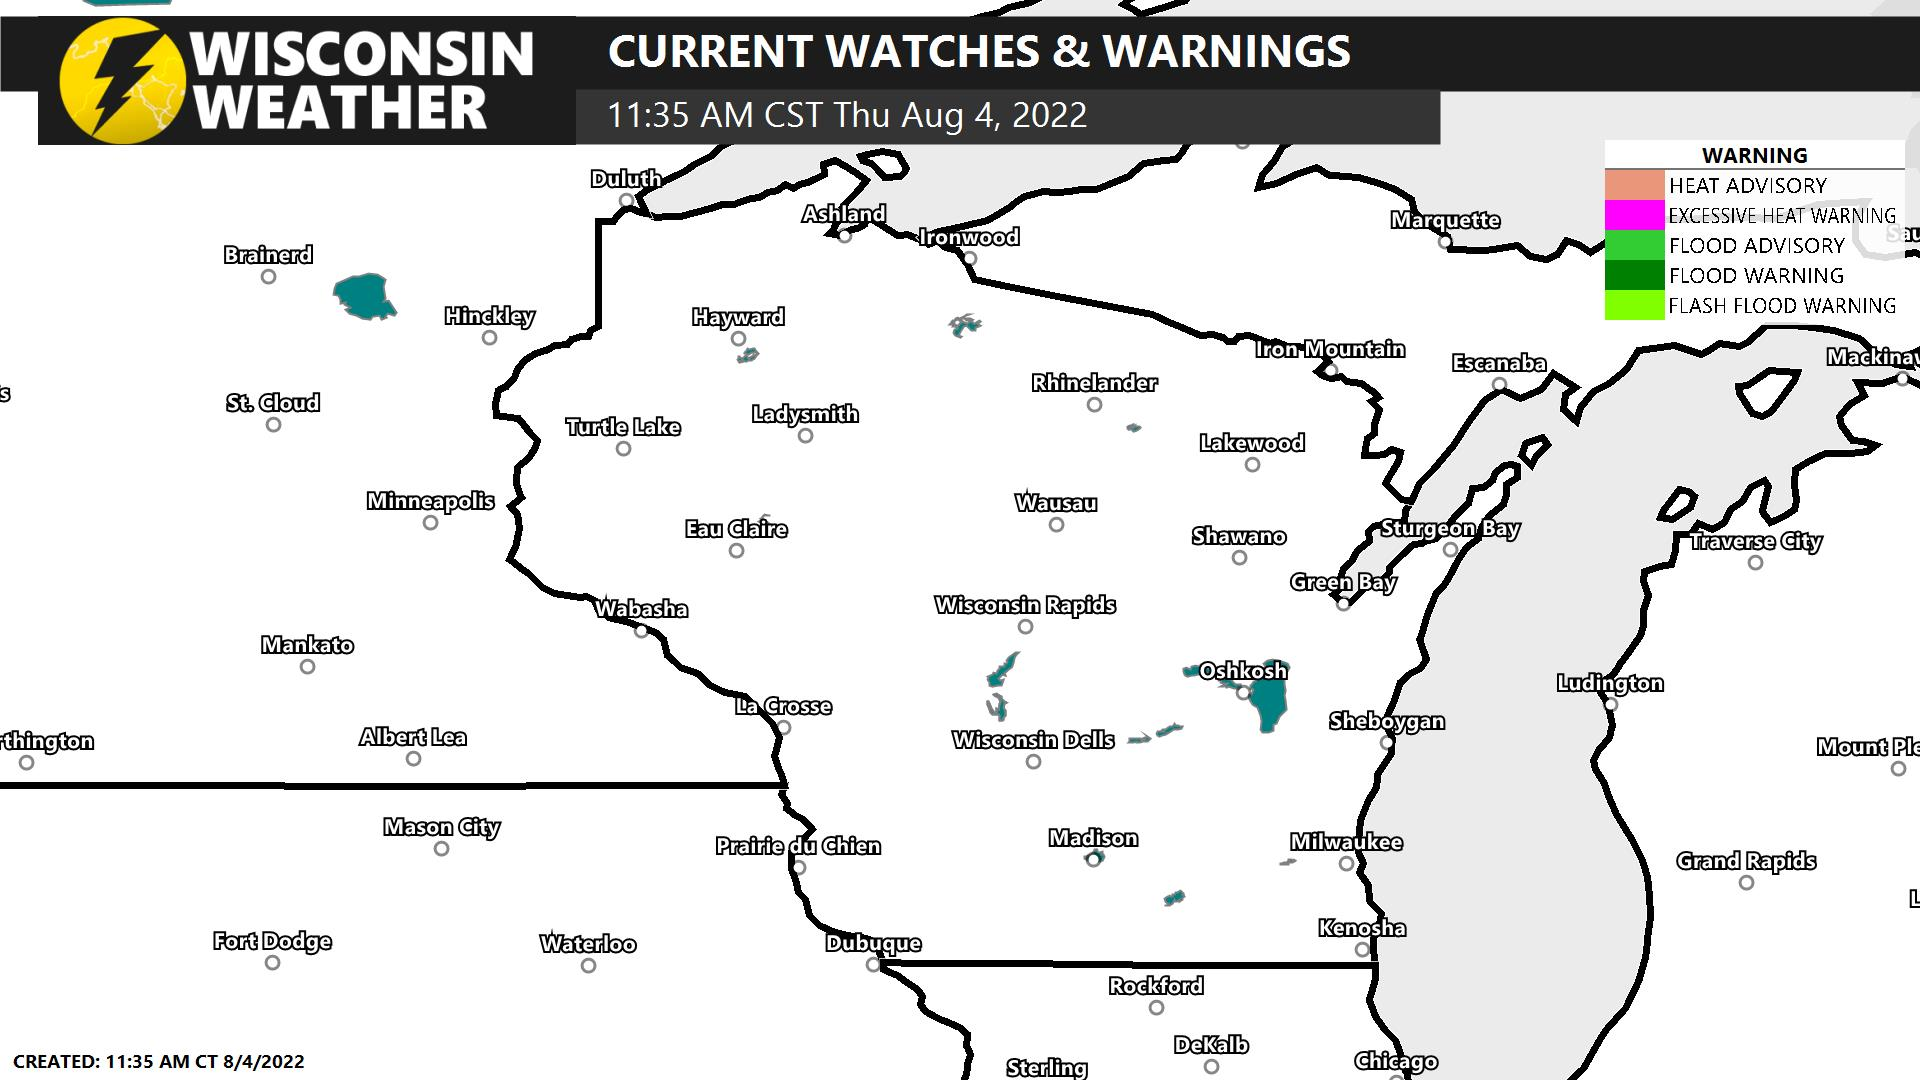 Current Warnings, Watches, and Advisories